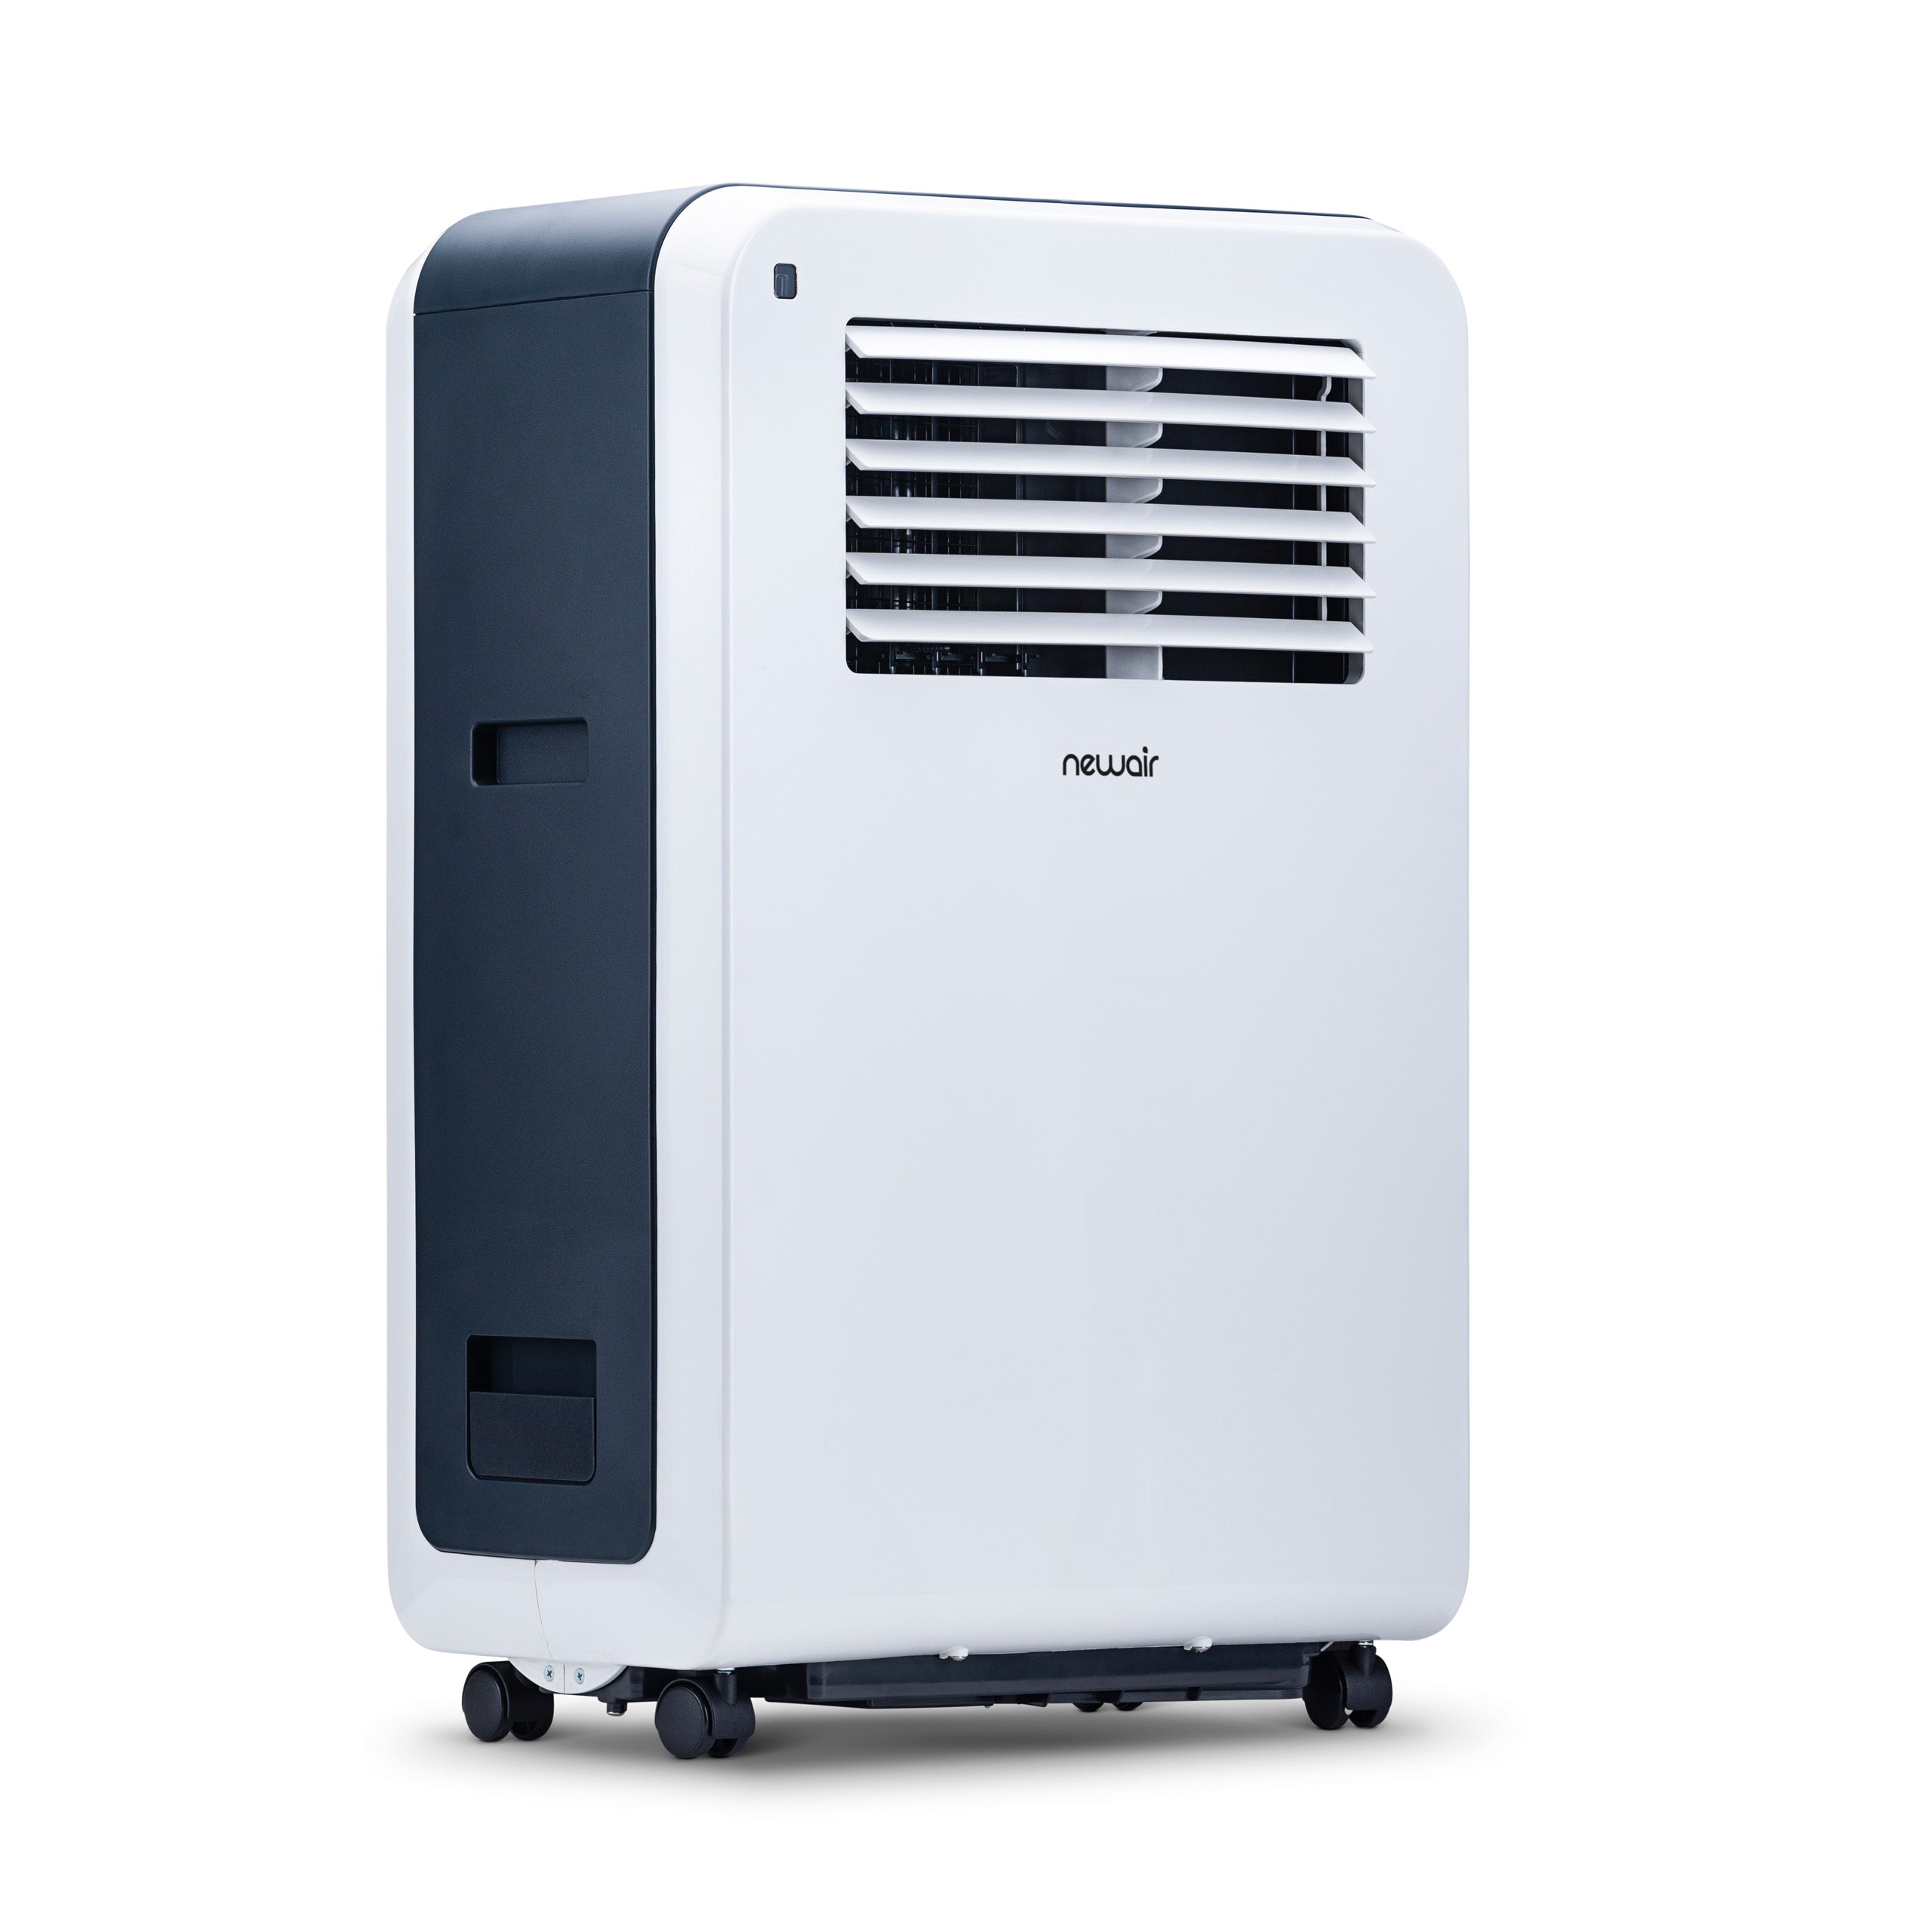 Portable Air Conditioner Troubleshooting and Common